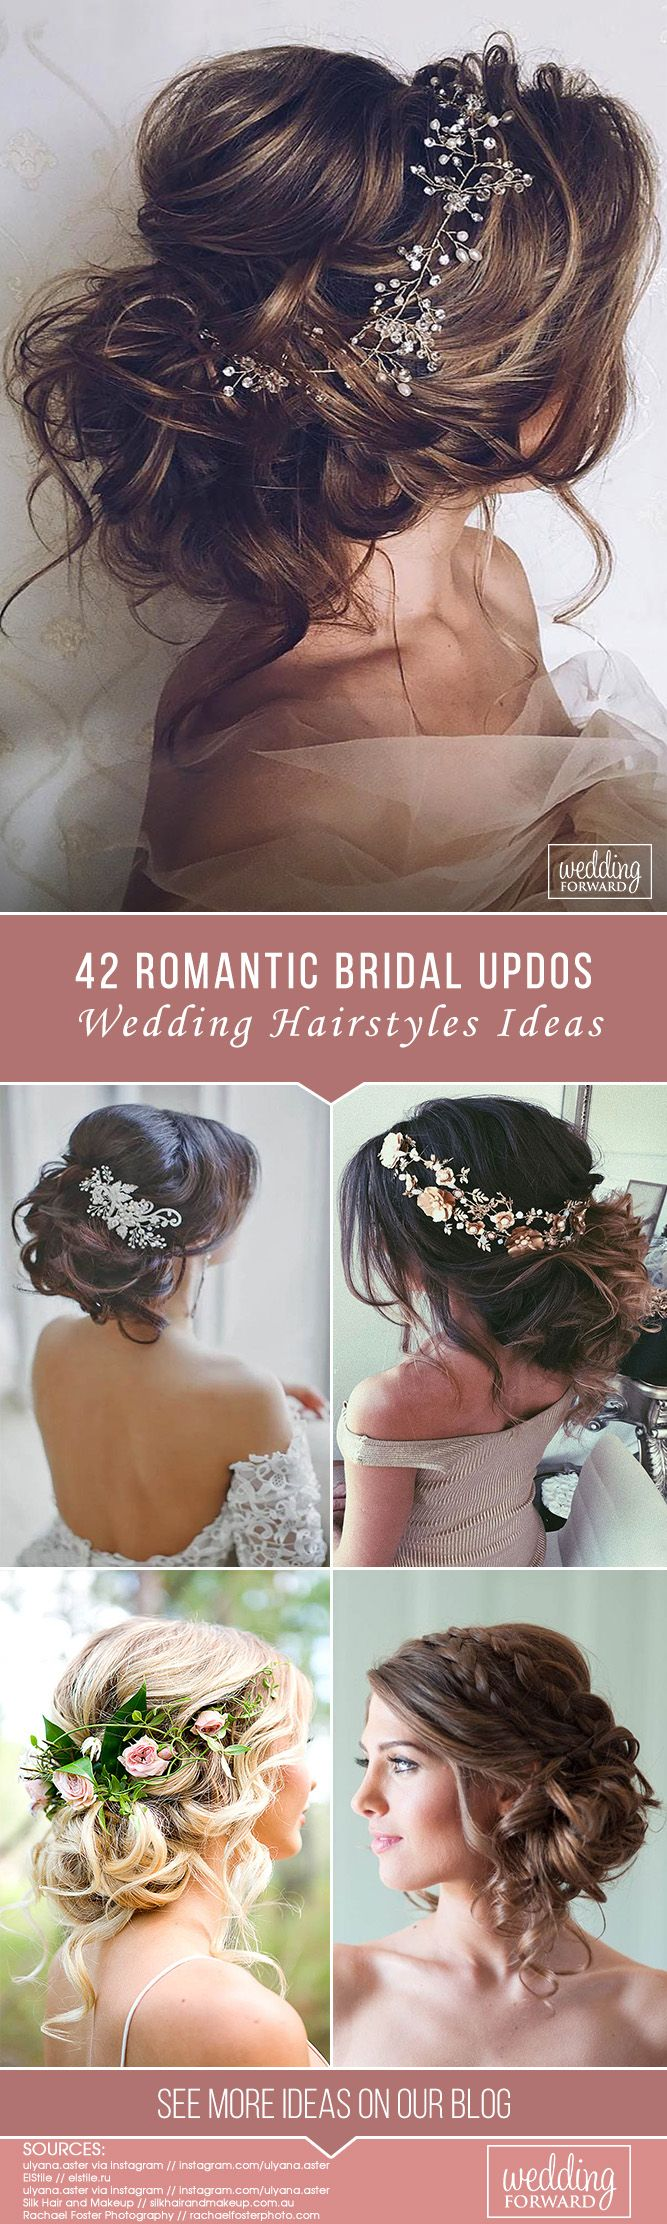 42 Wedding Hairstyles - Romantic Bridal Updos ❤ We make a list of our favorite...